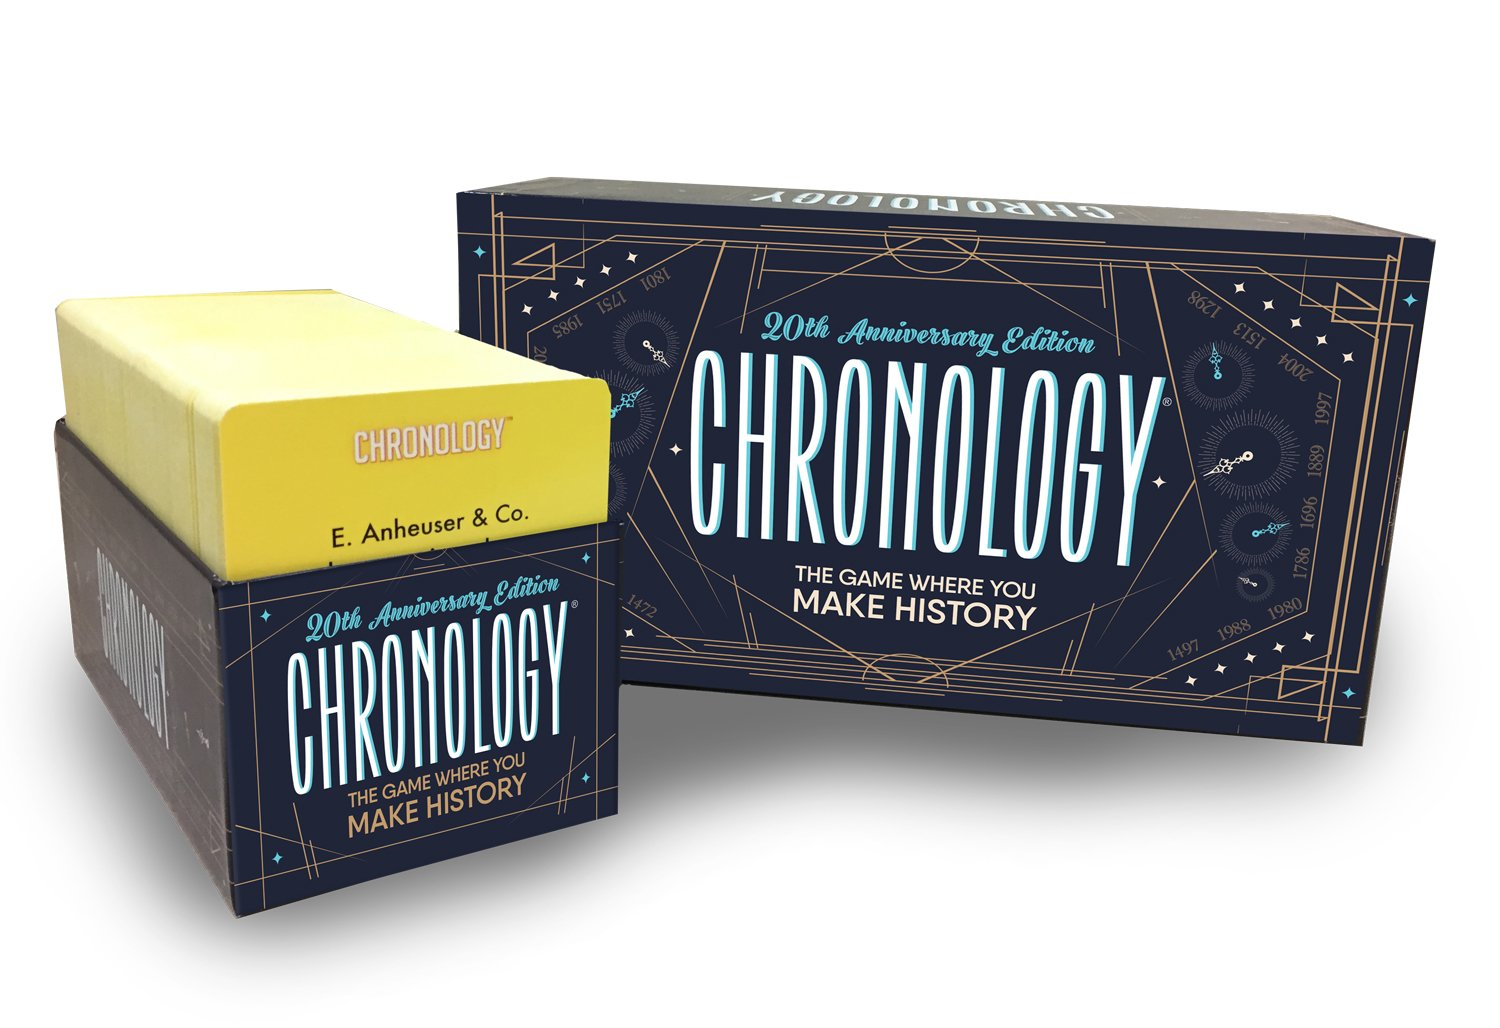 Good Gifts for Girlfriend on Amazon: Chronology: The Game Where You Make History